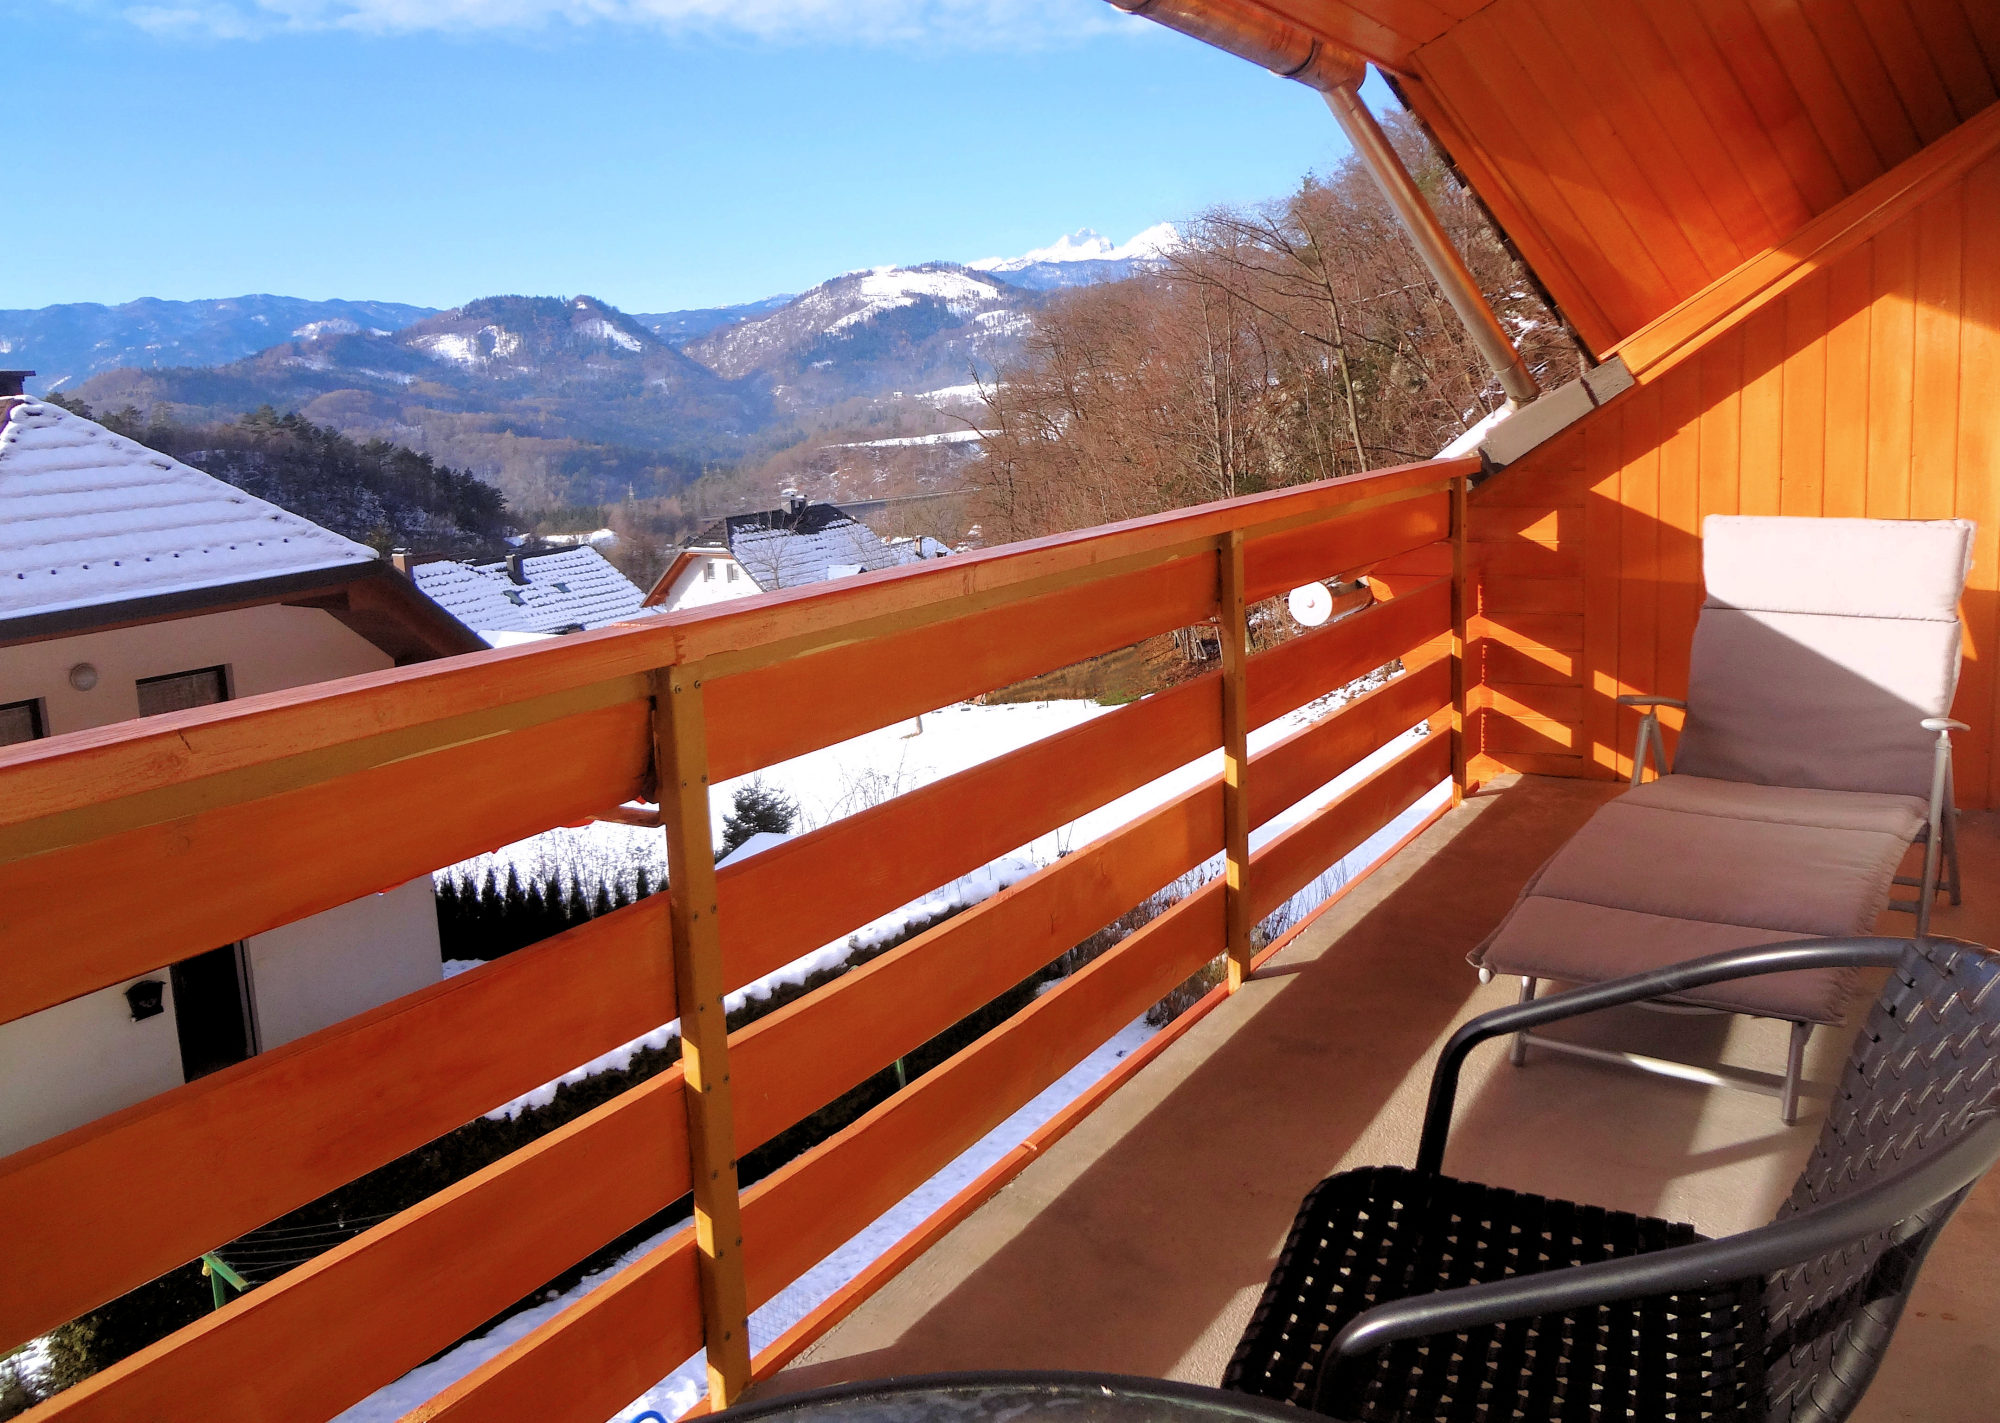 A view of the Slovenian Alps in winter from the balcony of Apartments Fine Stay in Slovenia